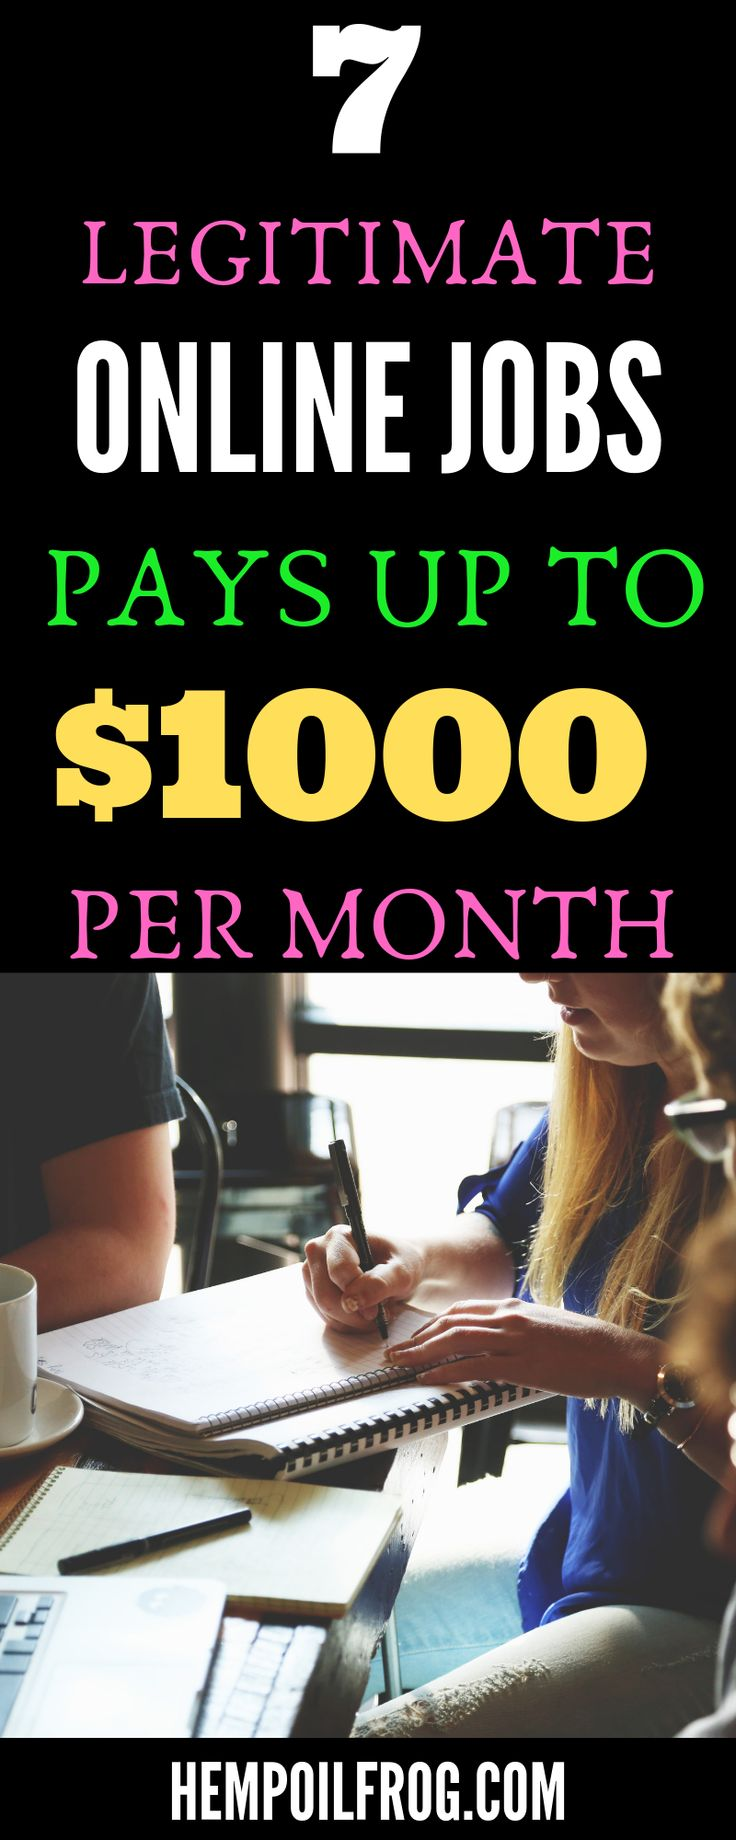 7 Legitimate Online Jobs Where You Can Earn Over $1K a Month